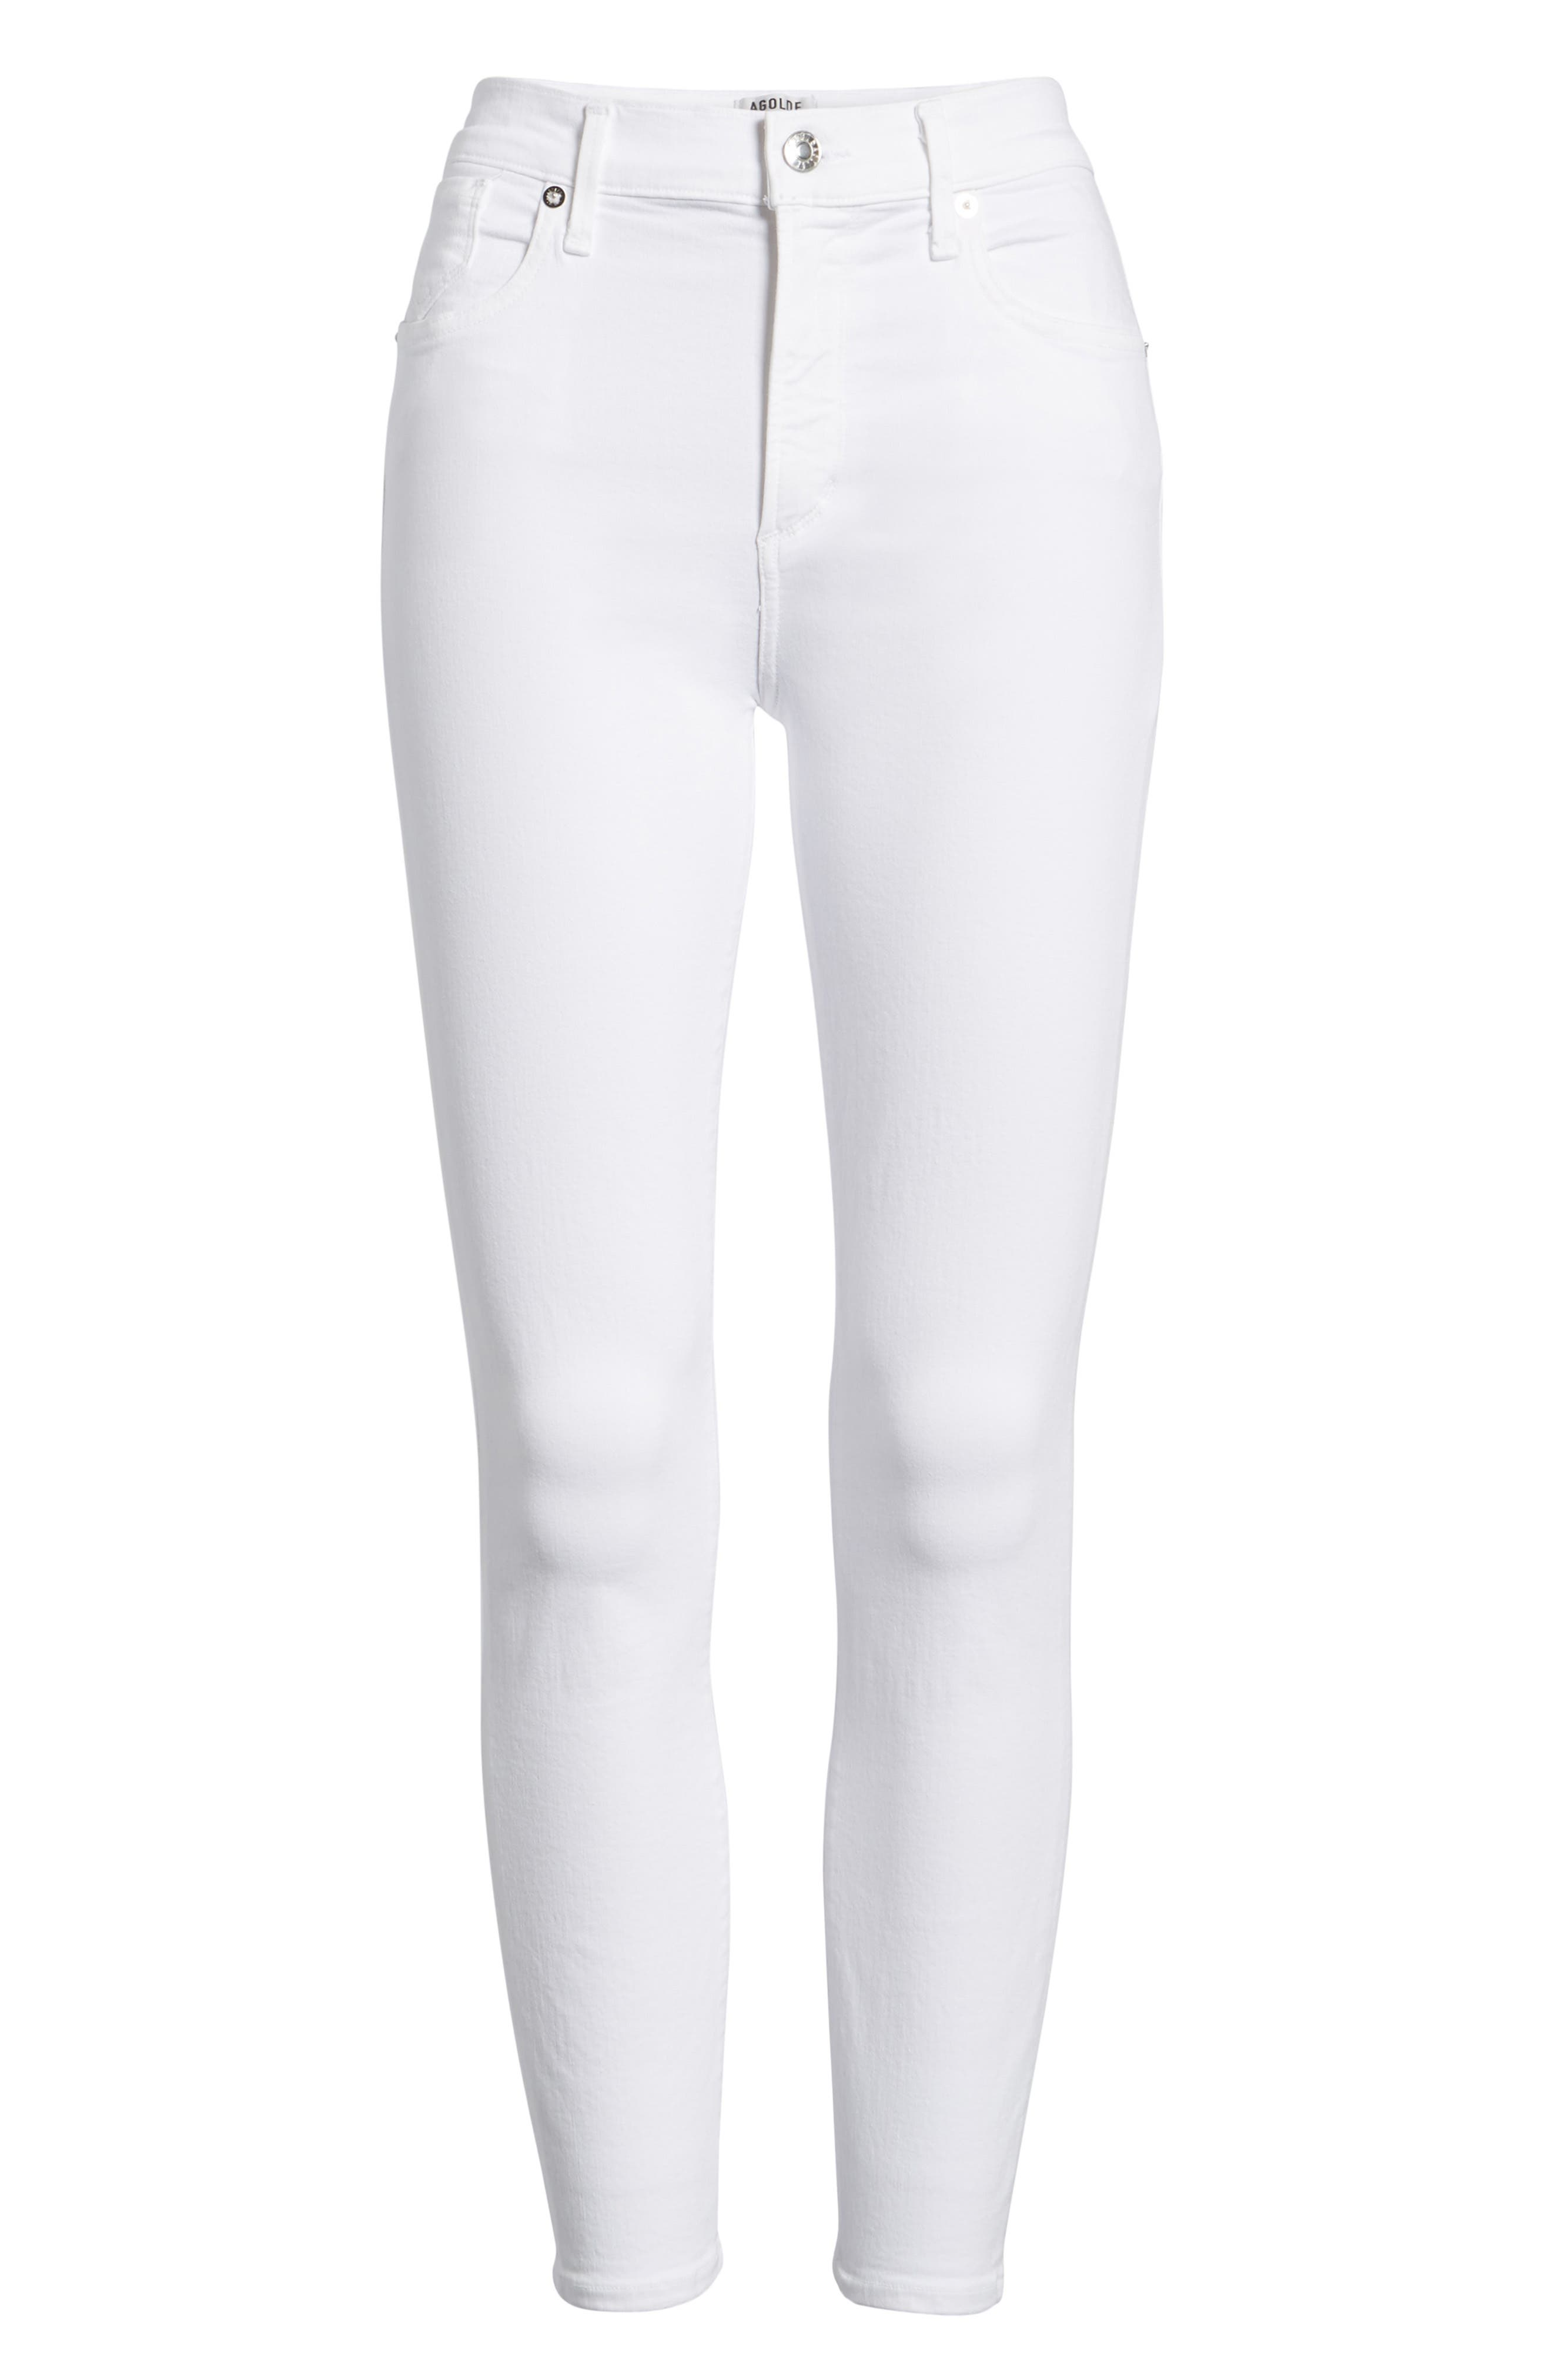 Sophie High Waist Ankle Skinny Jeans,                             Alternate thumbnail 7, color,                             VIXEN